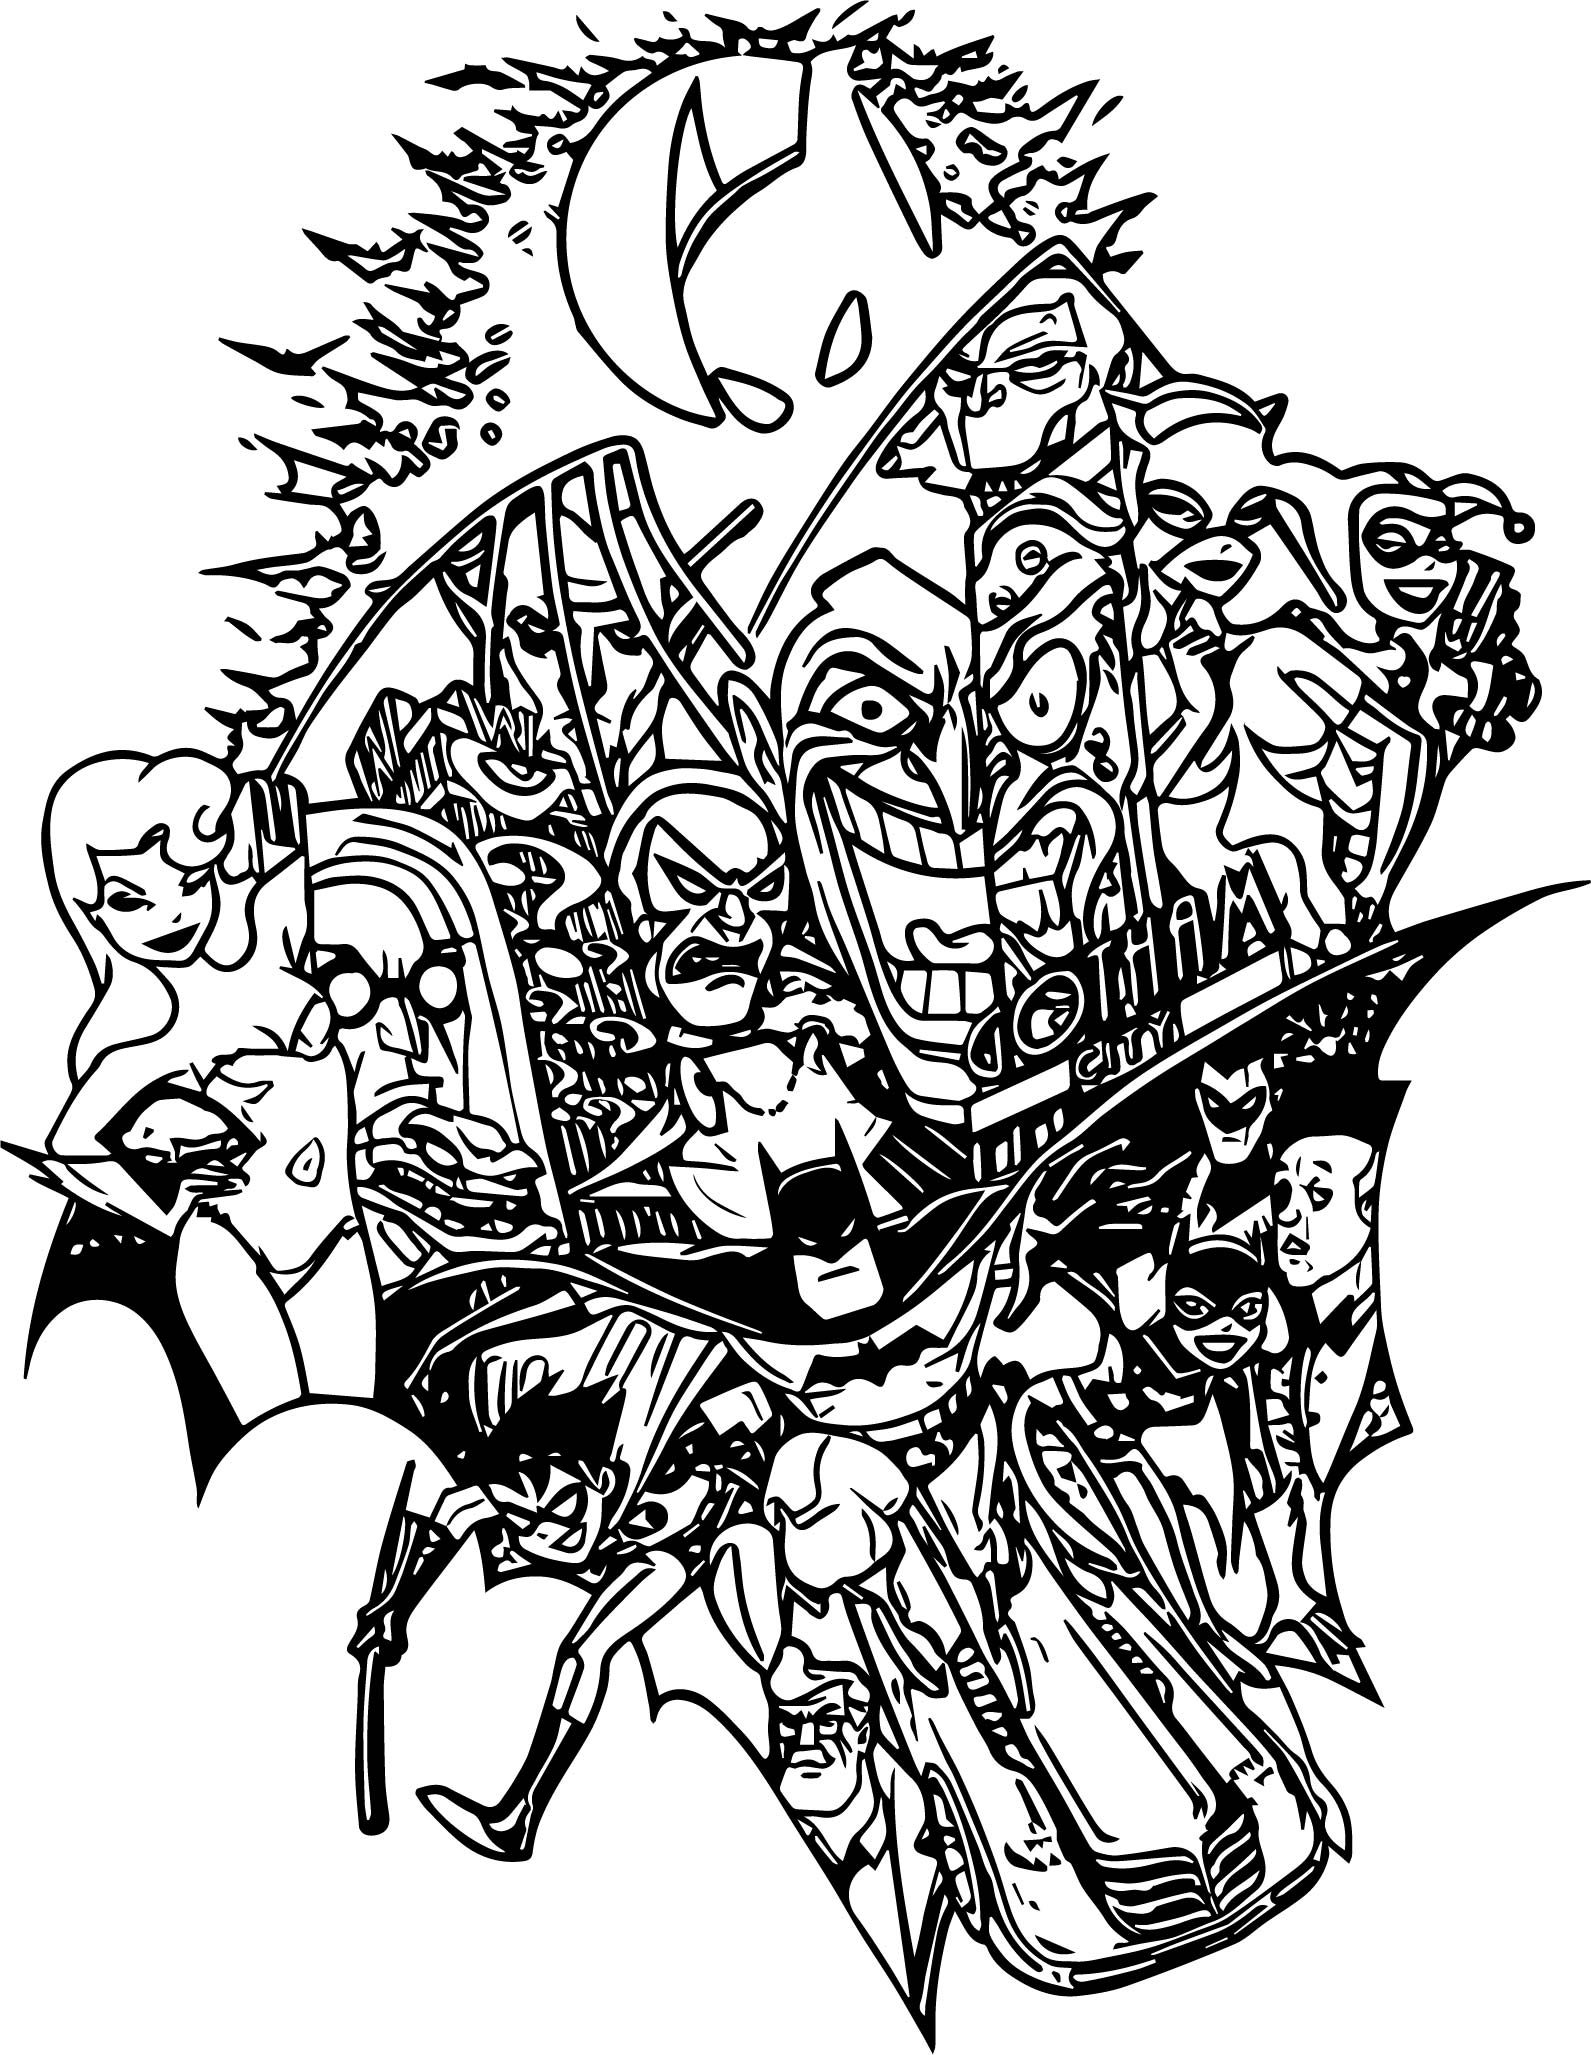 Batman Tas Tattoo Design Coloring Page